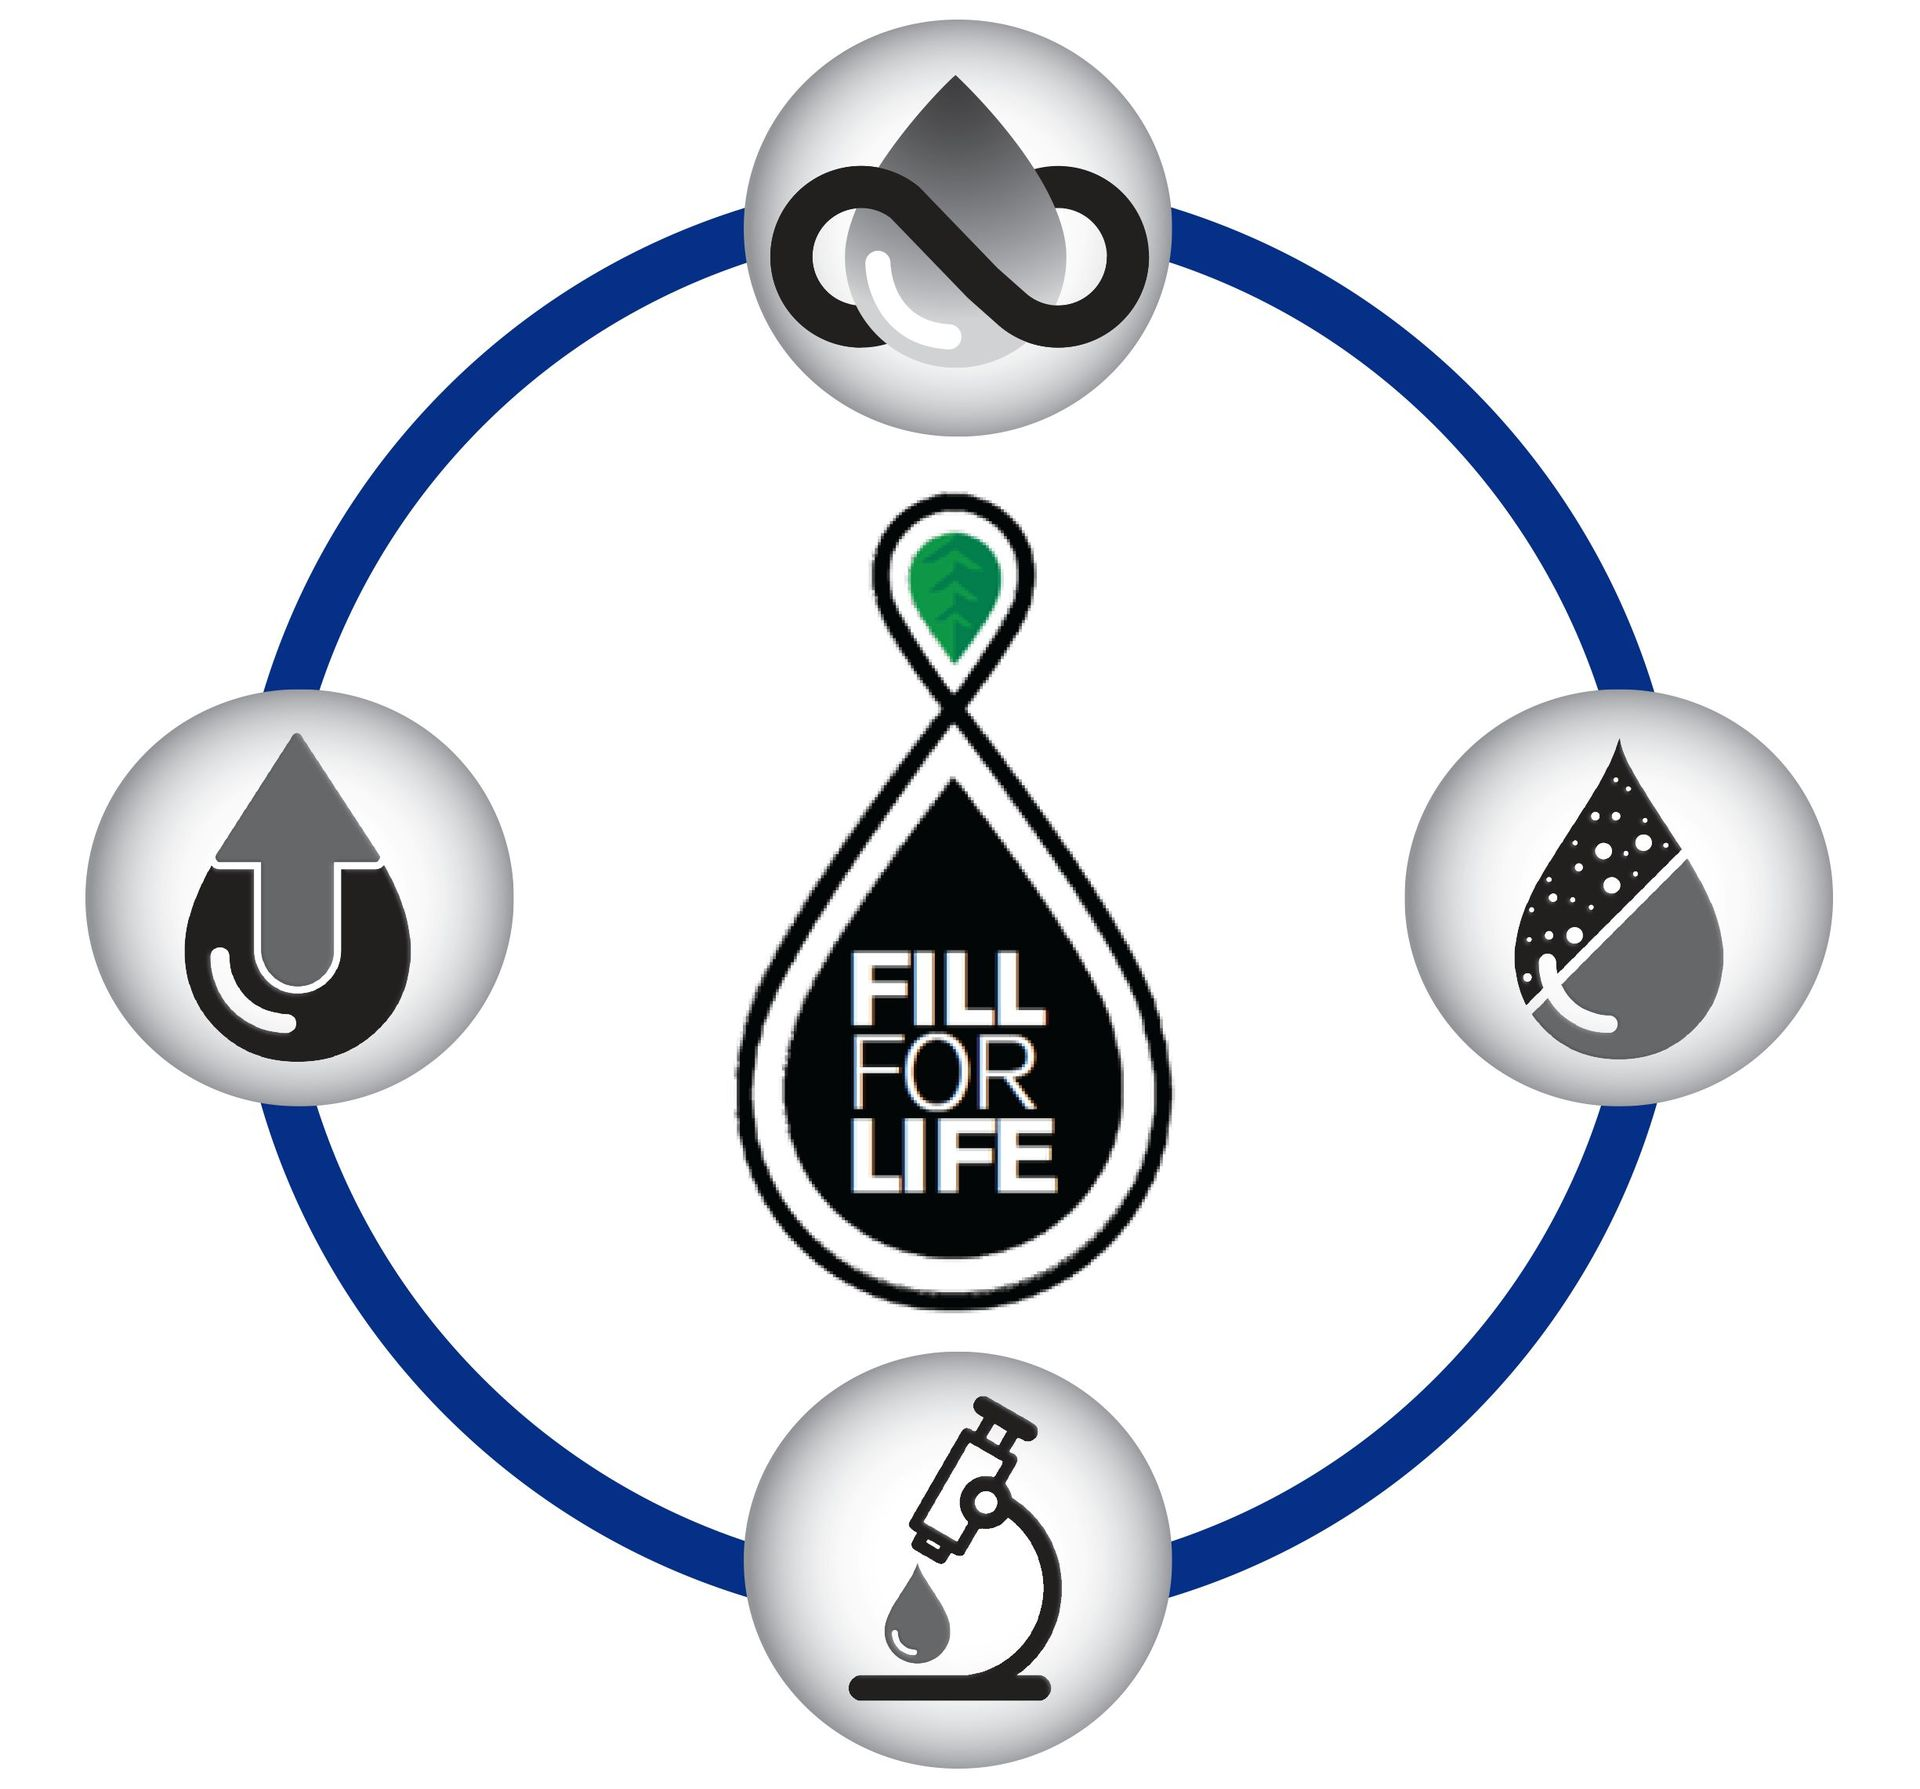 Fill For Life Circle.png